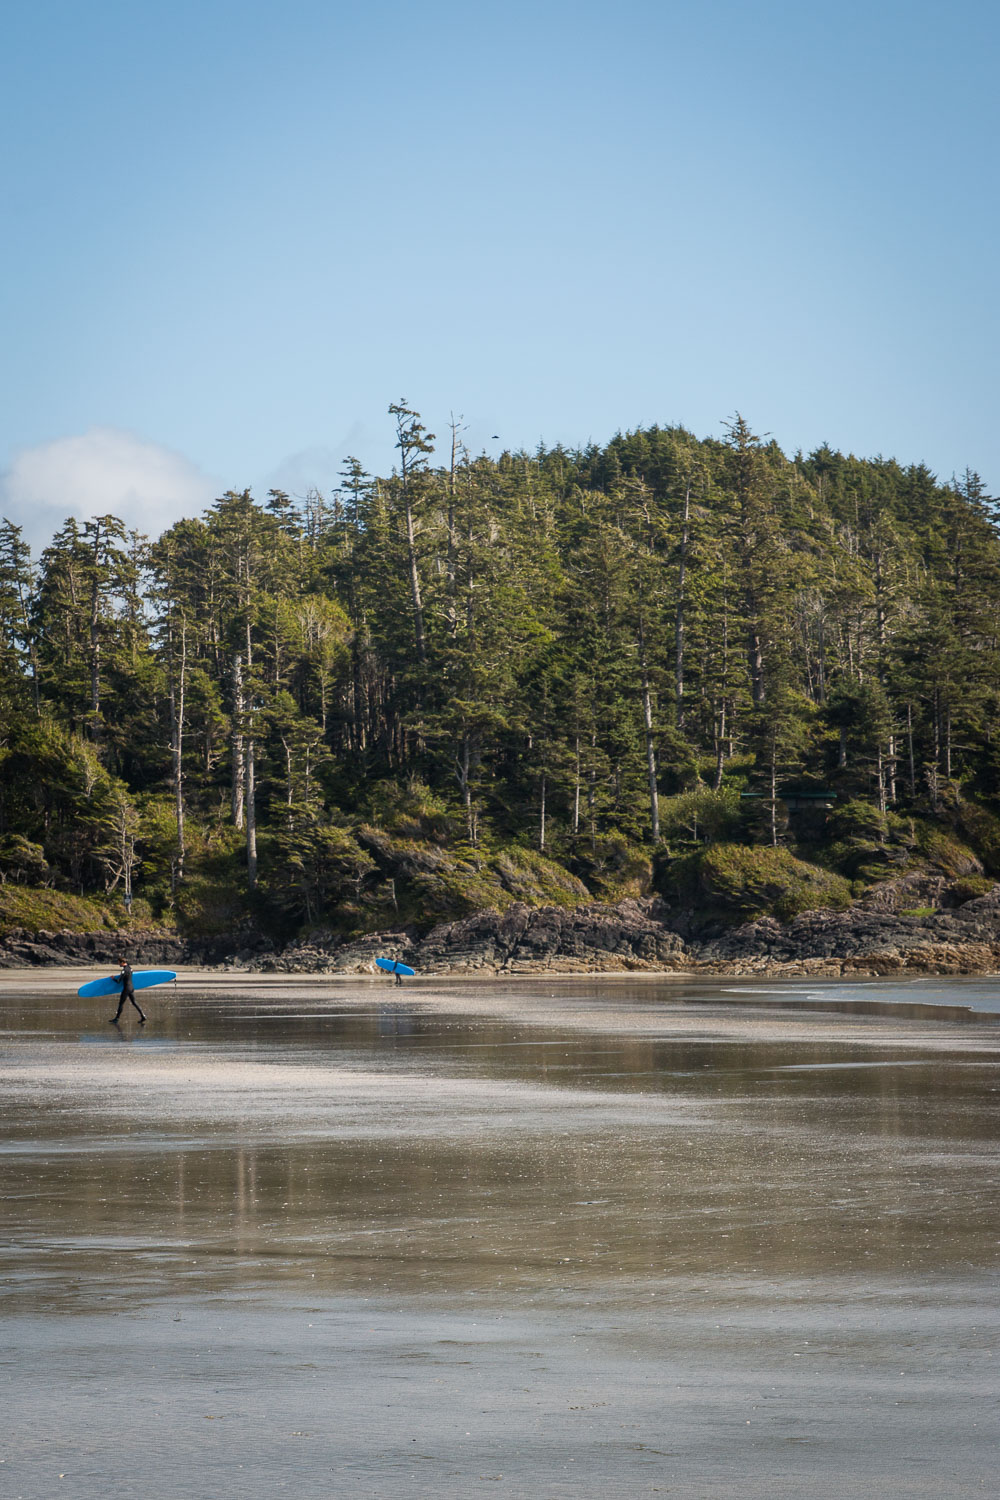 Surfers at Chesterman Beach in Tofino, Summer 2017